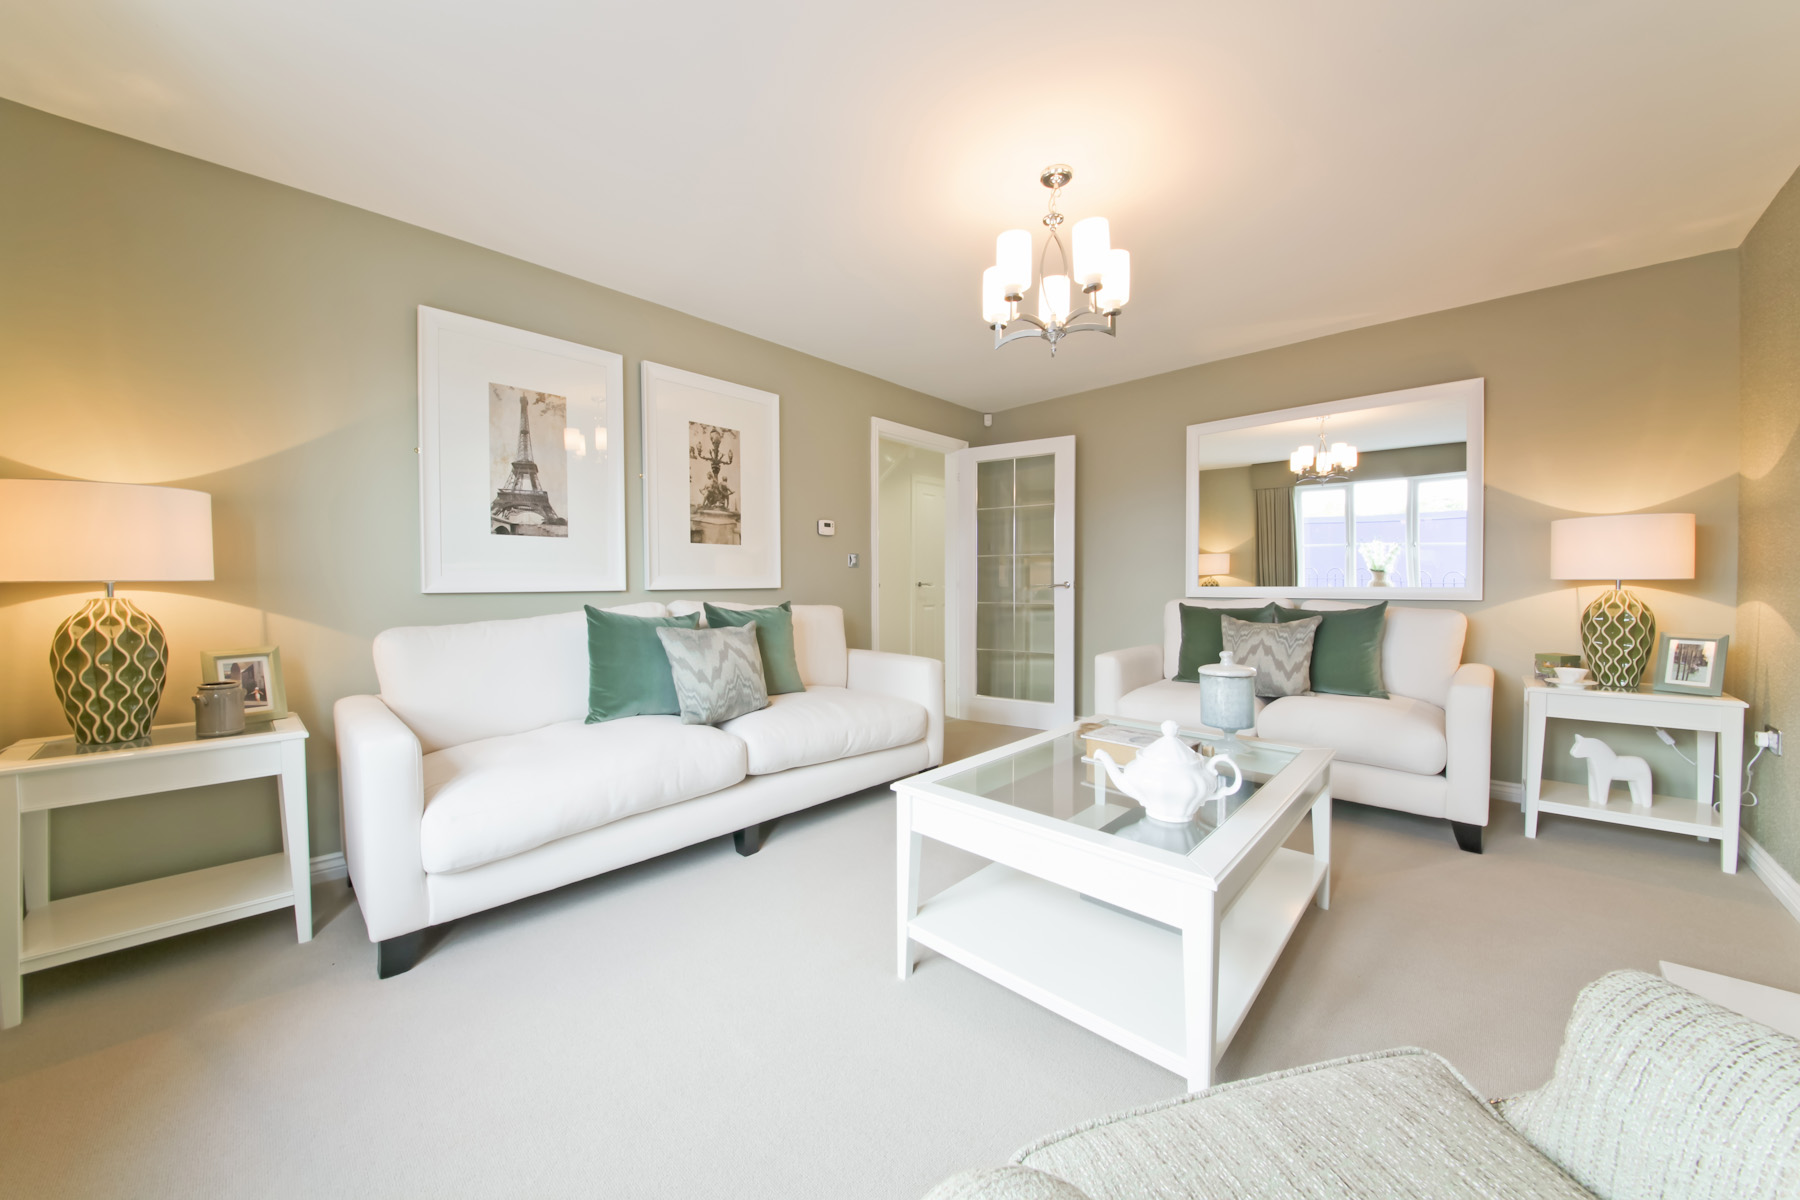 TW Exeter - Mayfield Gardens - Huxford example living room